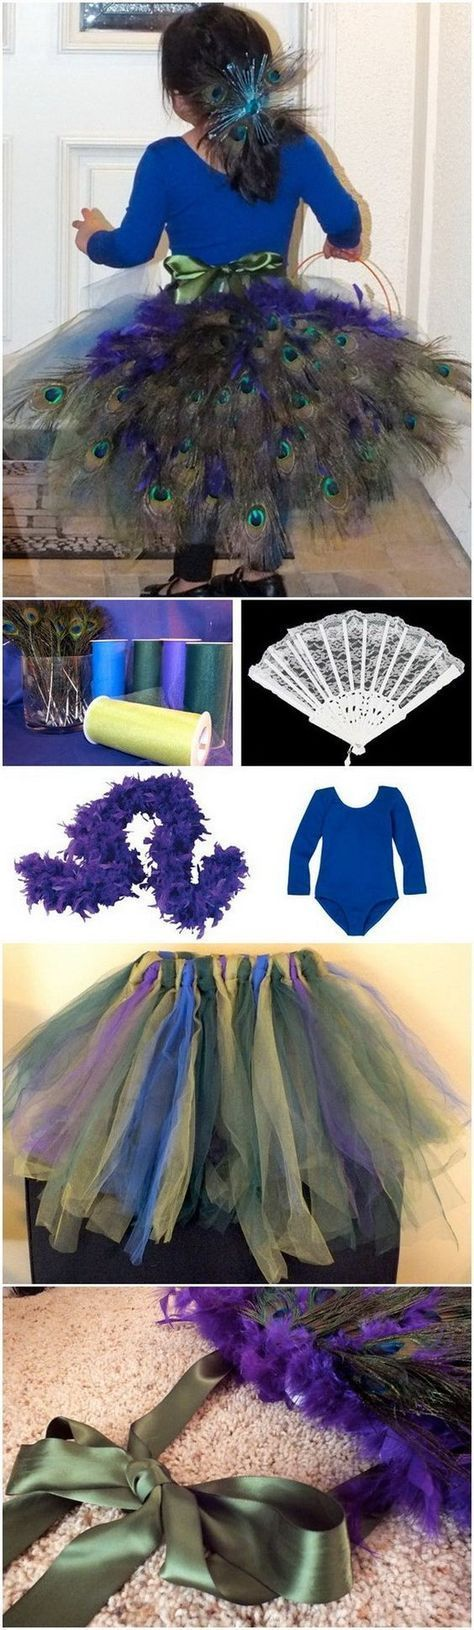 20 best costumes images on Pinterest | Carnivals, Halloween ideas ...